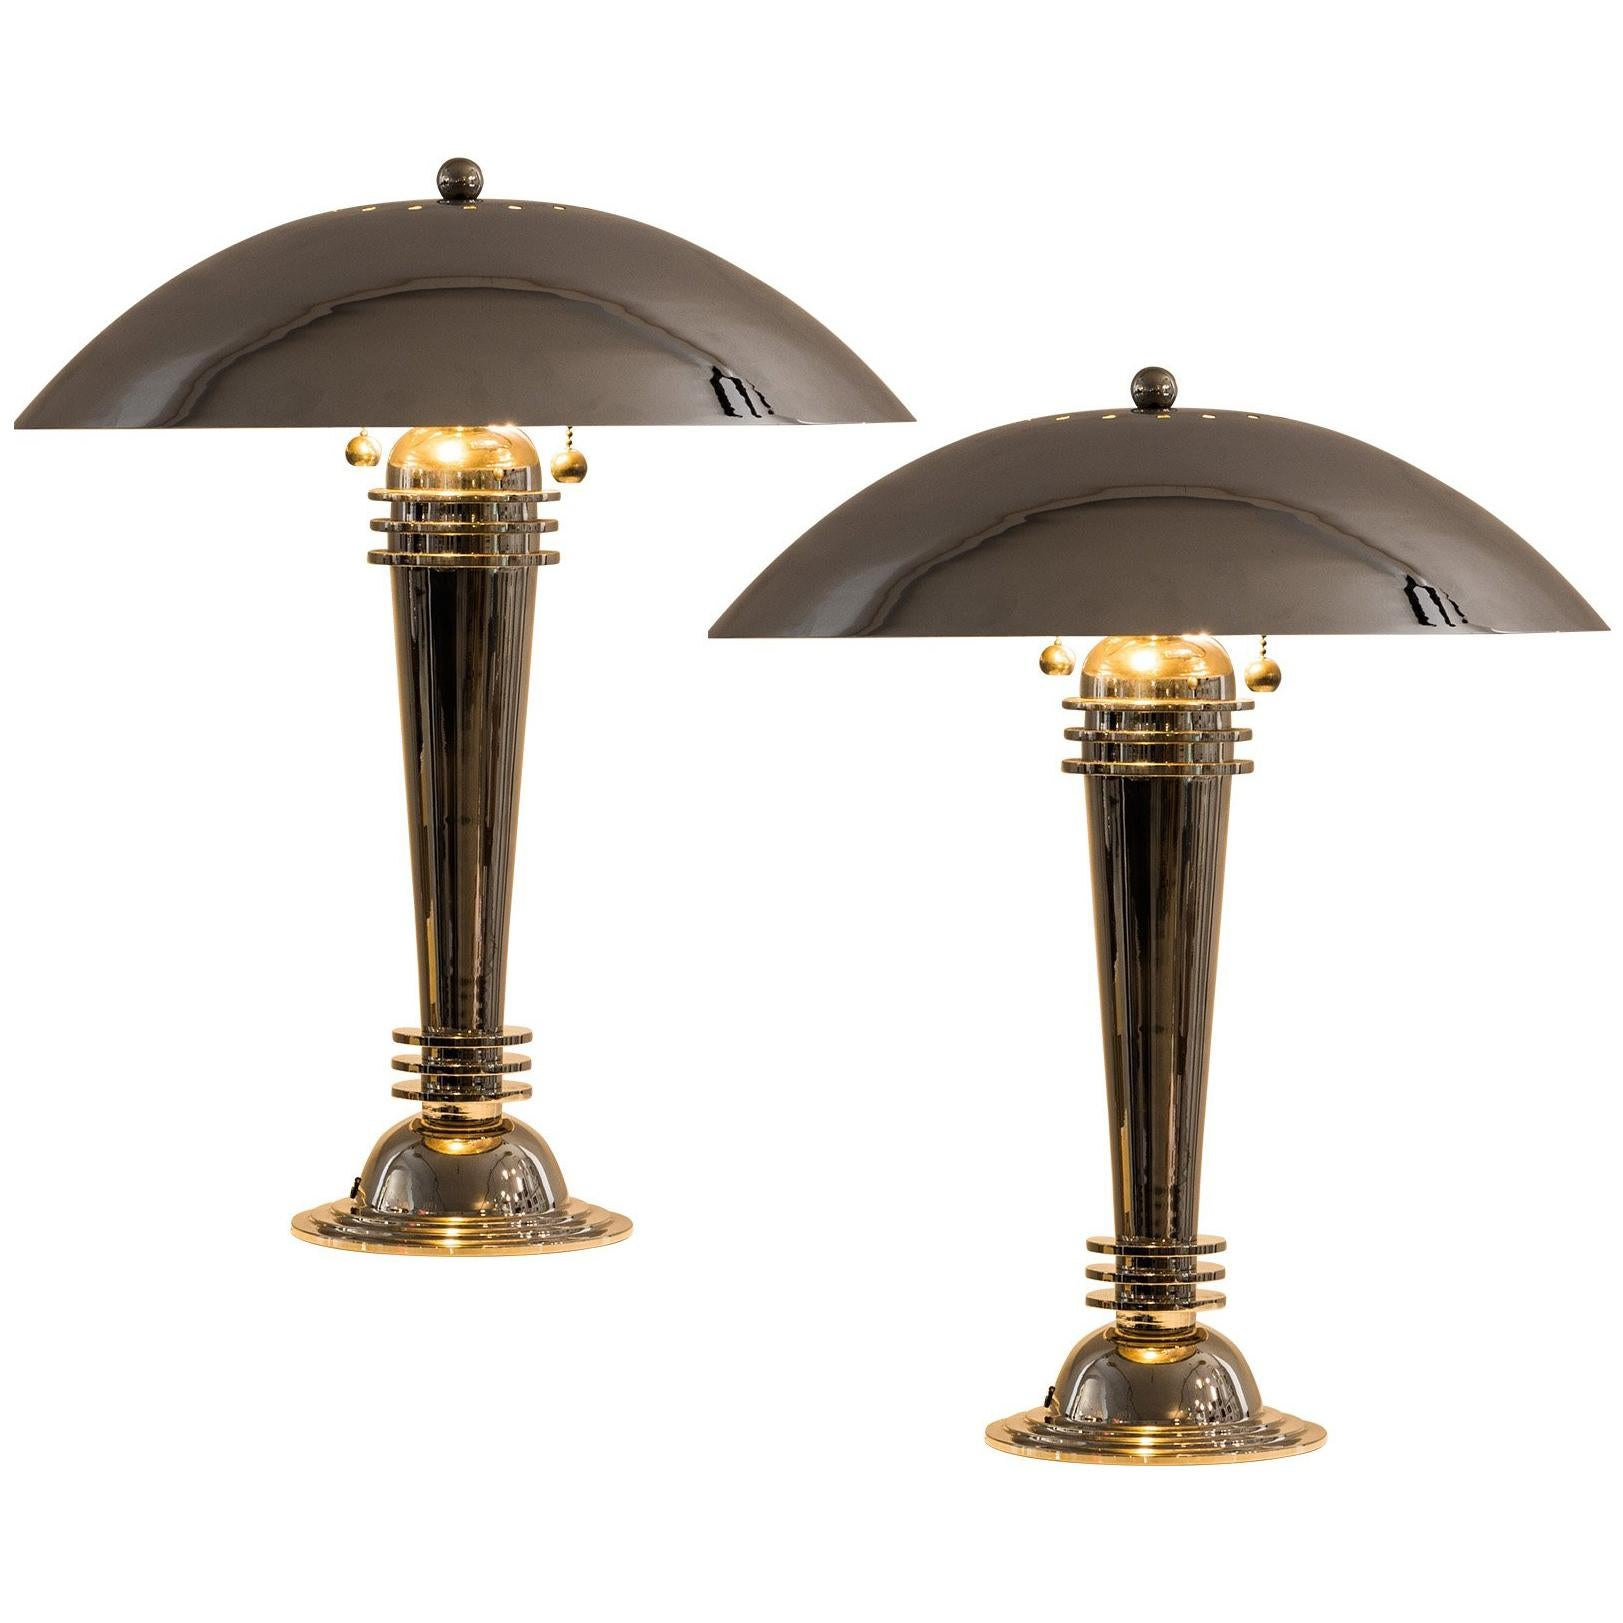 Art Deco Table Lamps Vintage From 1925 Brass, Nickel Plated For Sale